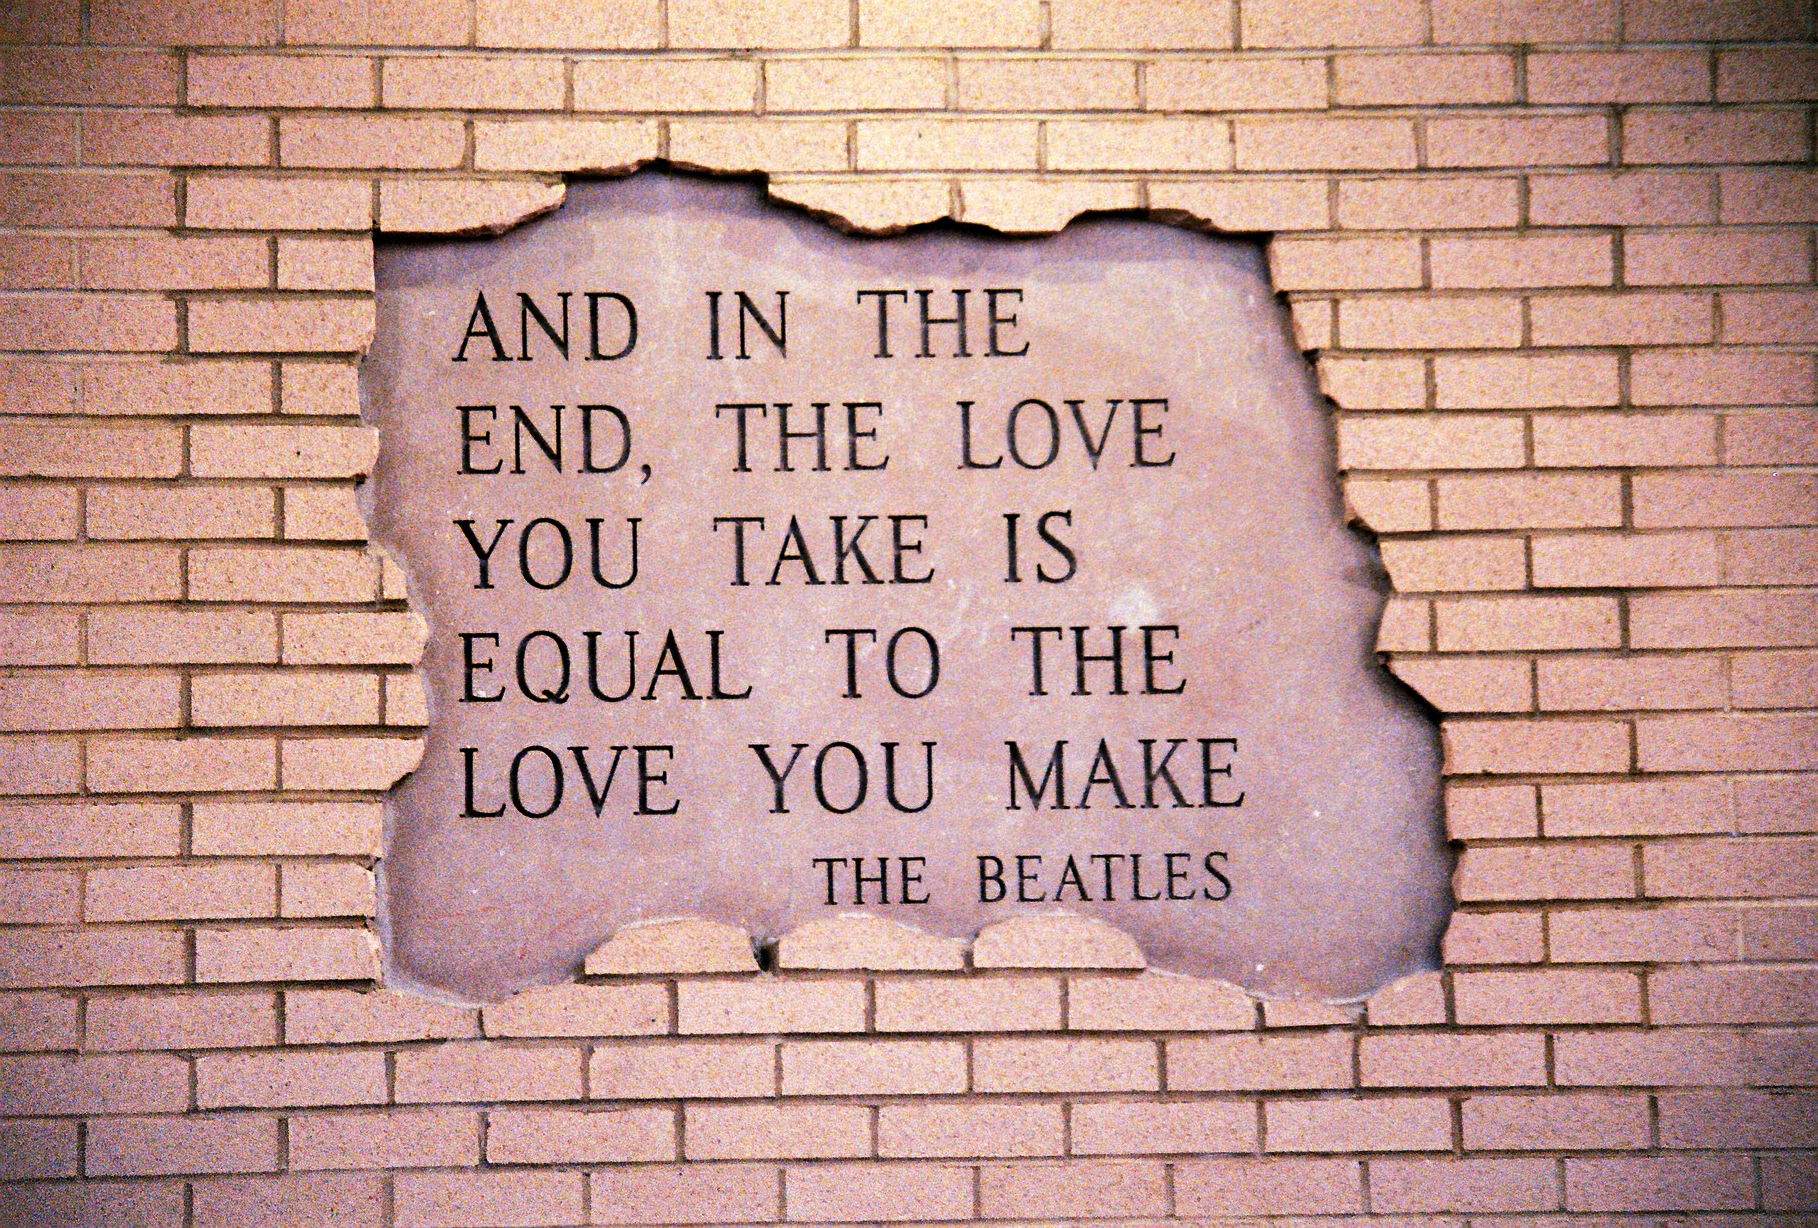 Beatles Quotes Love The Midweek Beat 50 Years Later The Beatles Continues To